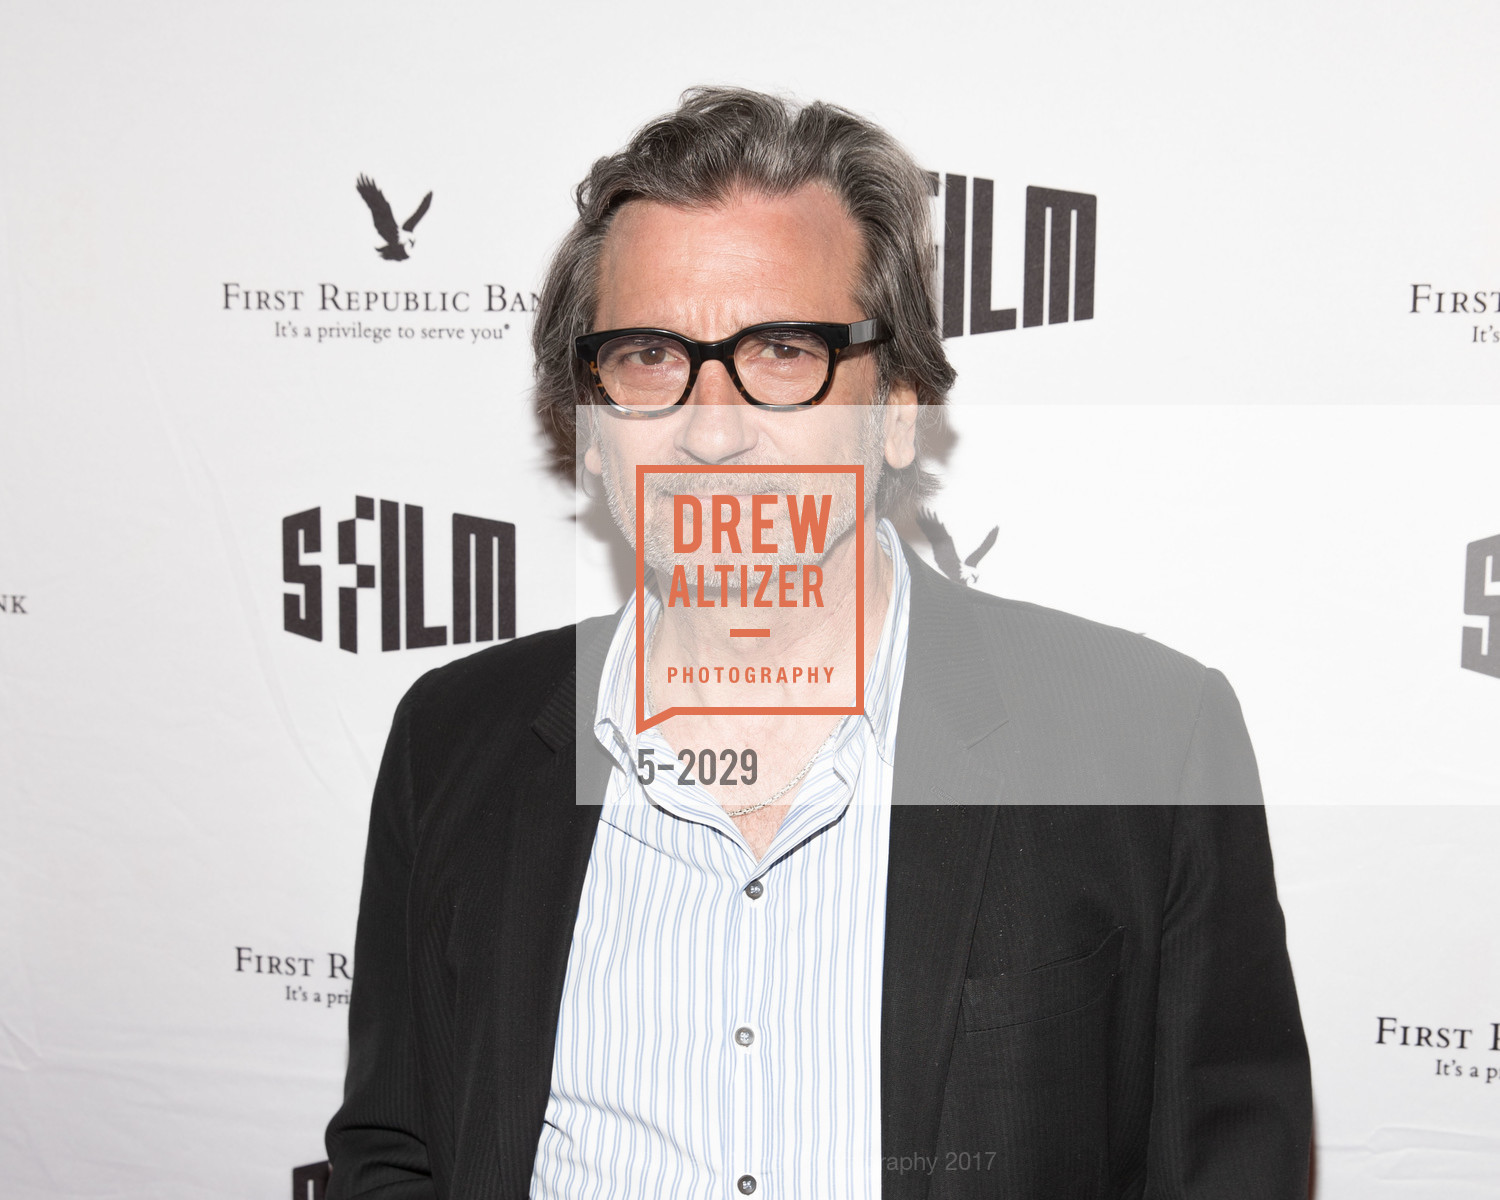 Griffin Dunne, Photo #5-2029